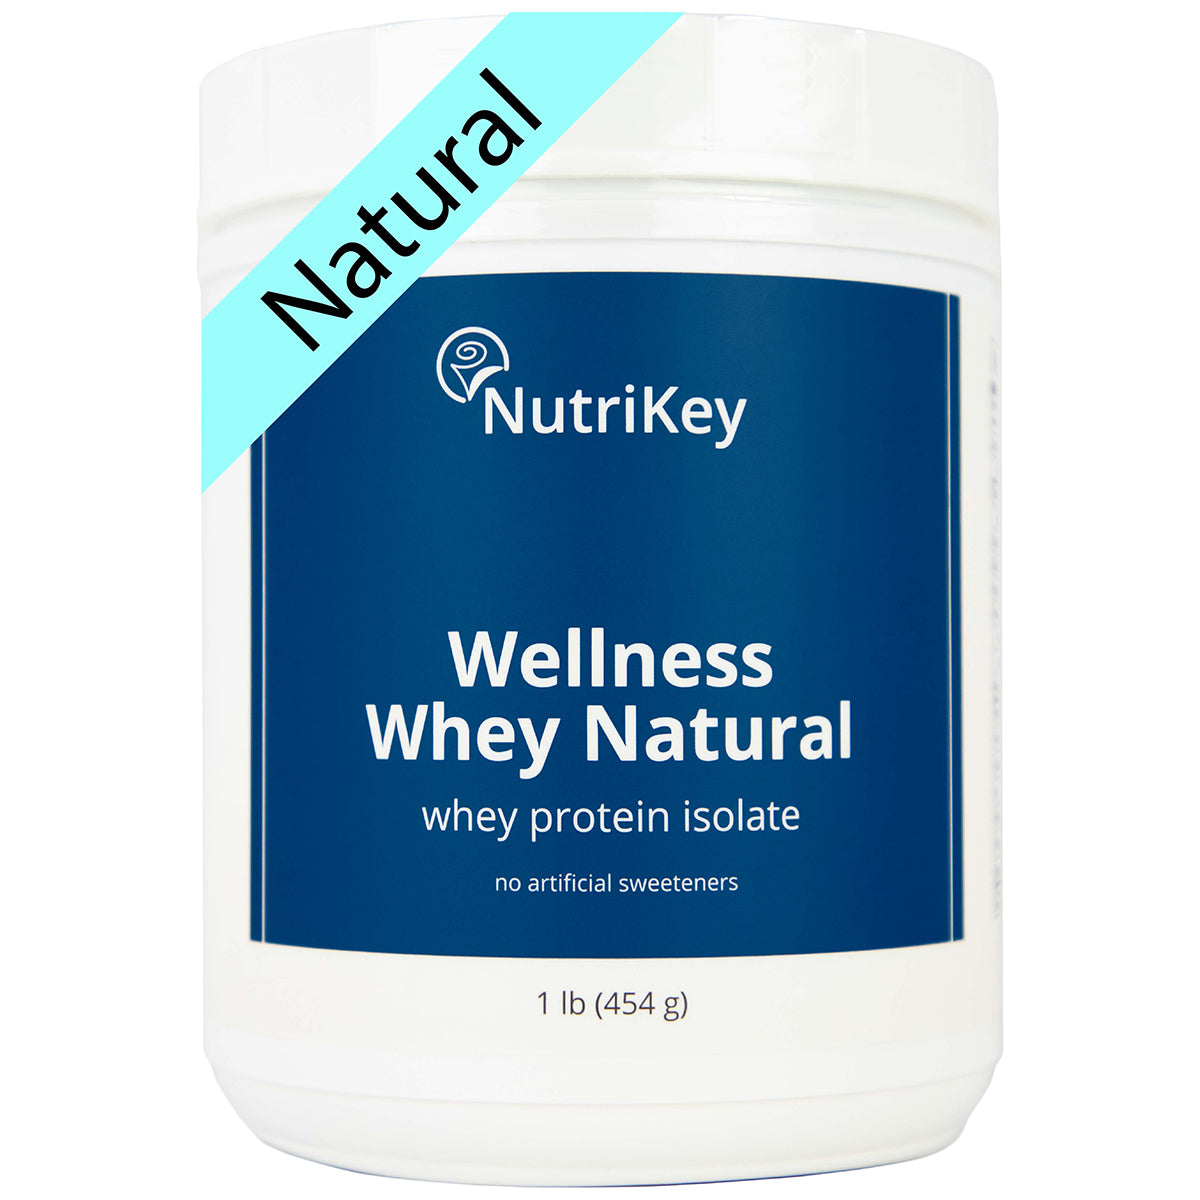 Wellness Whey Natural, 1lb